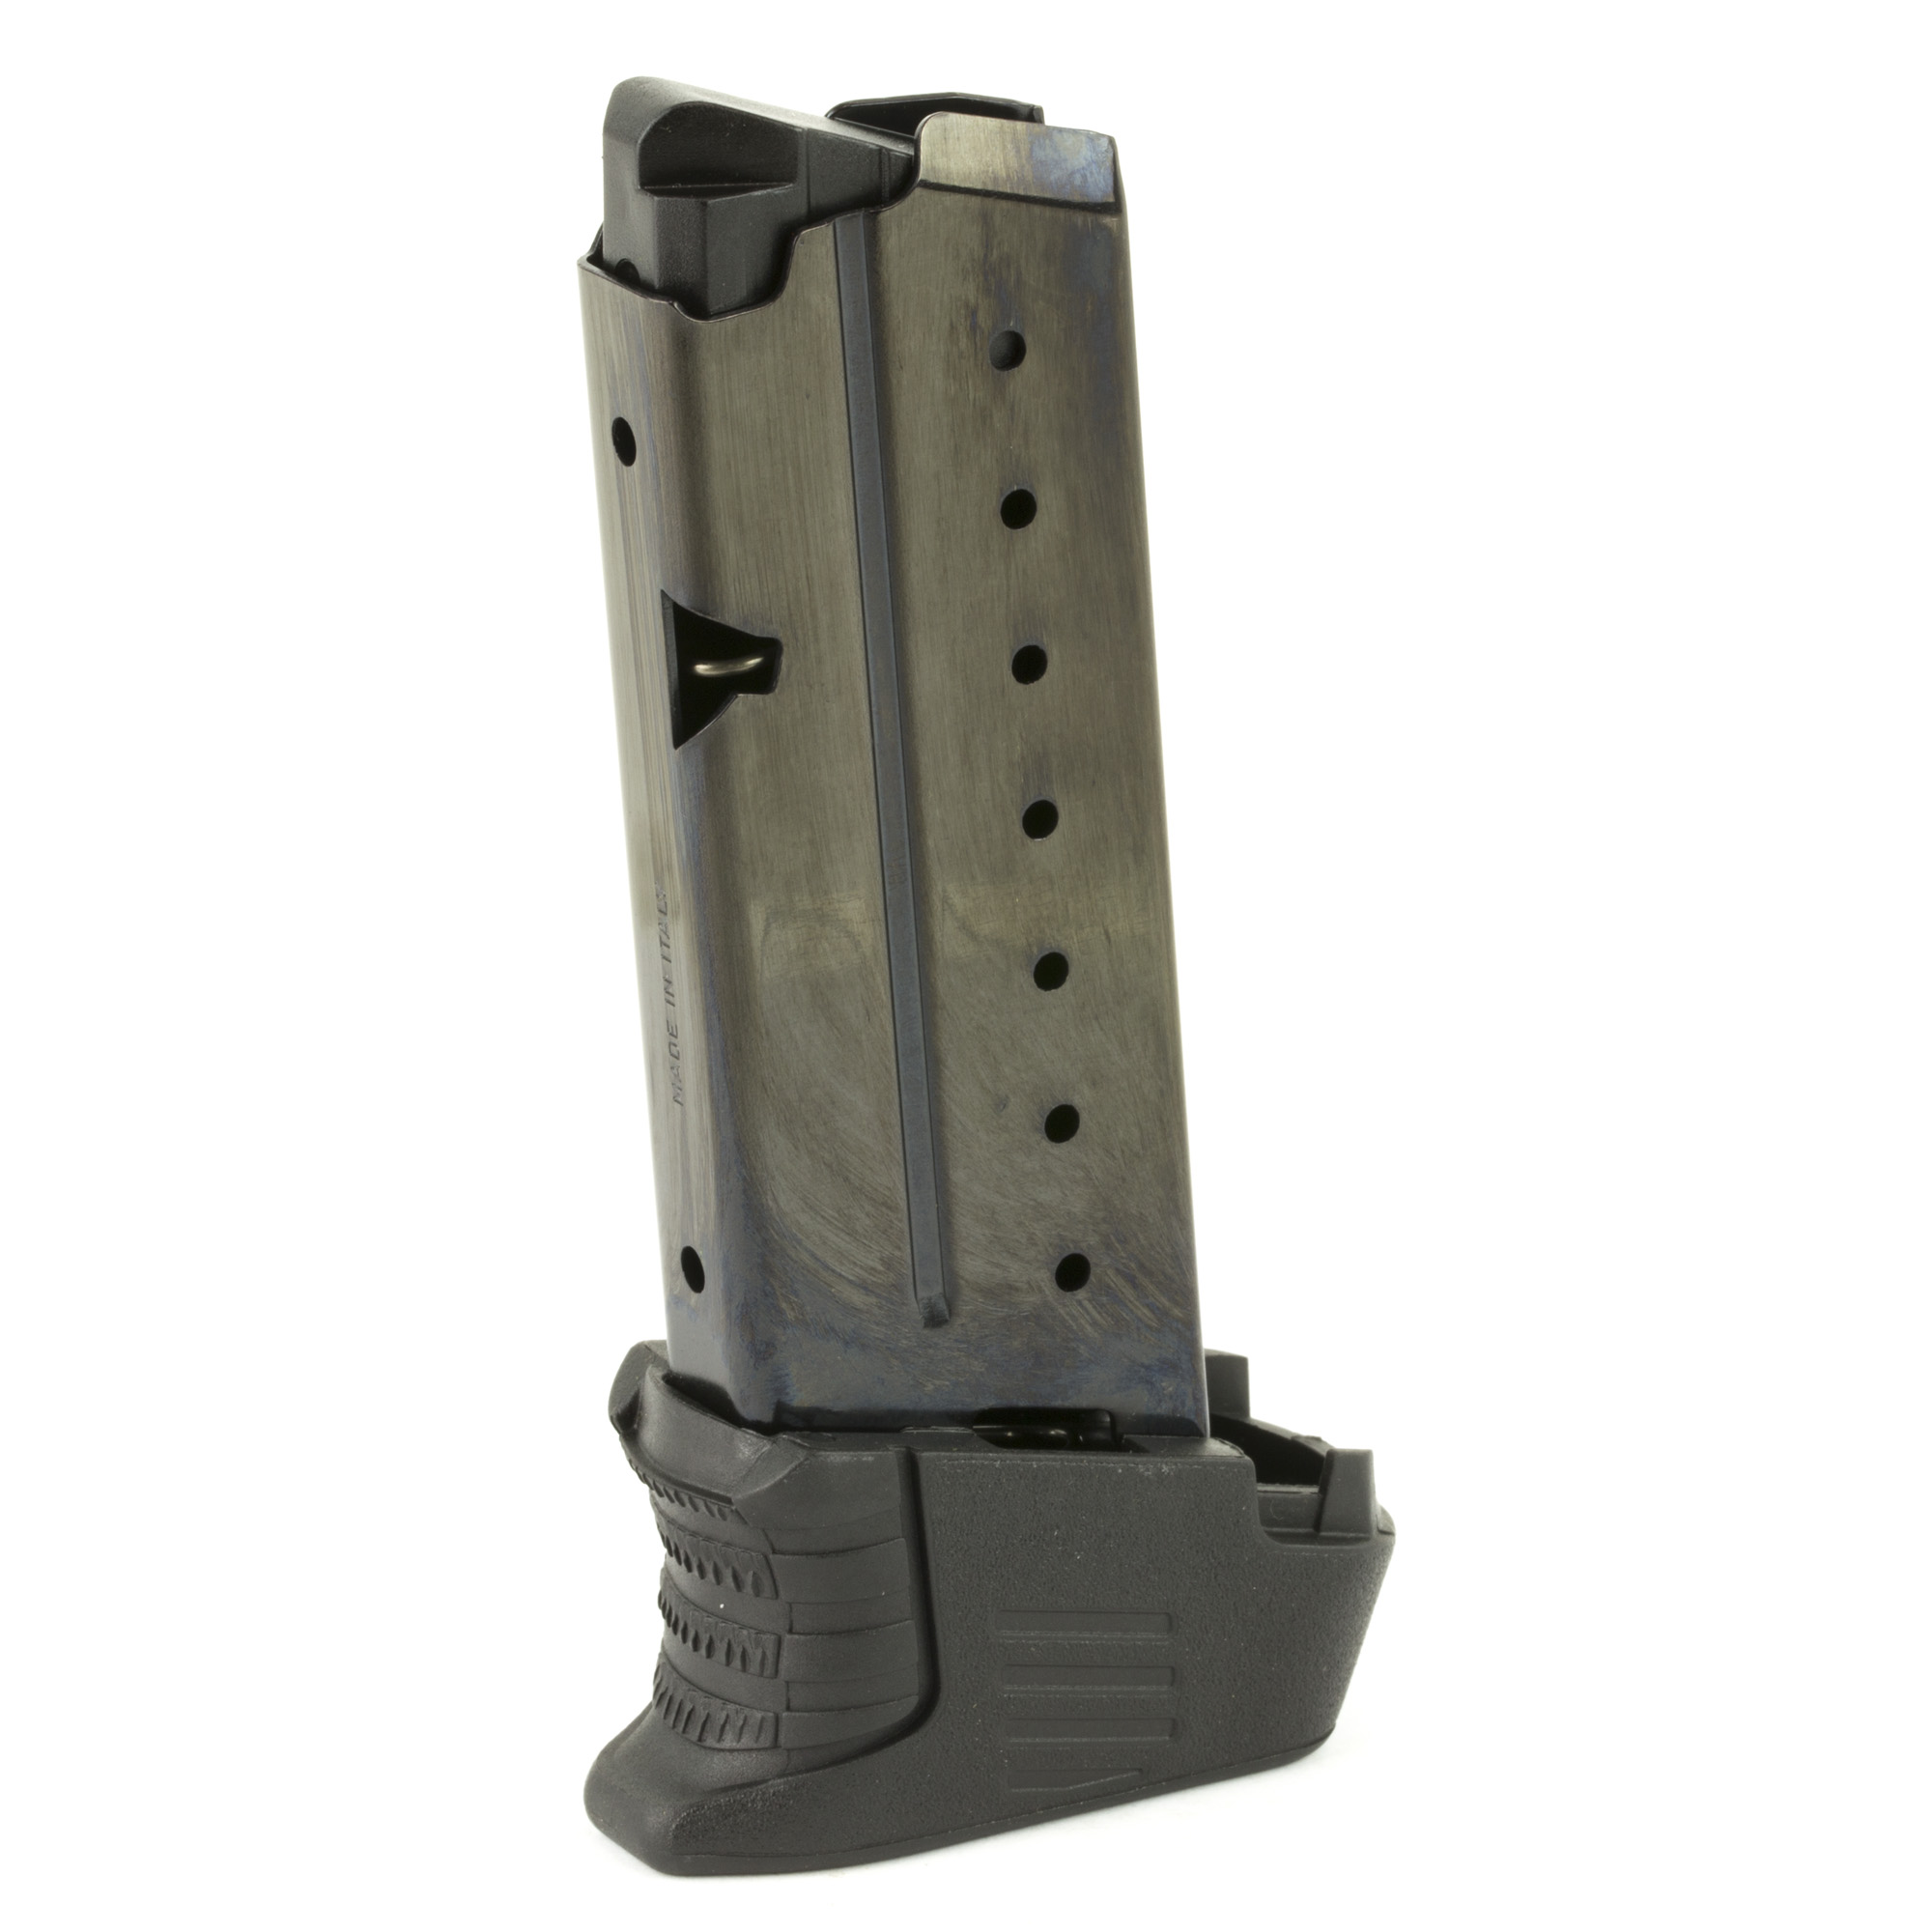 Mag Wal Pps 9mm 8rd